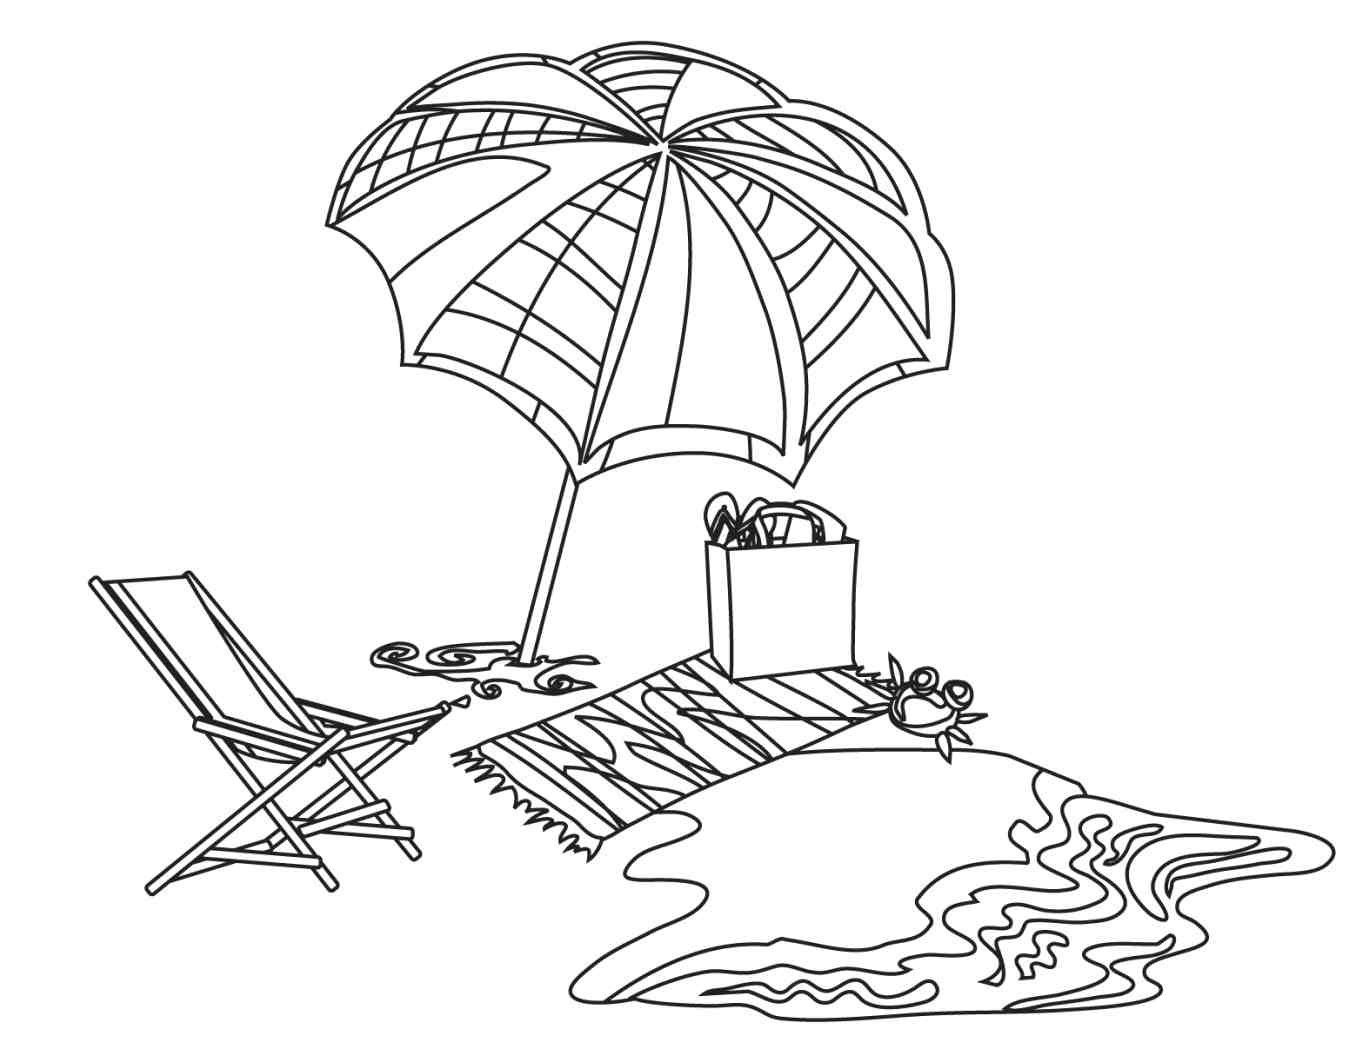 beach cartoon coloring pages beach coloring pages 20 free printable sheets to color pages cartoon beach coloring